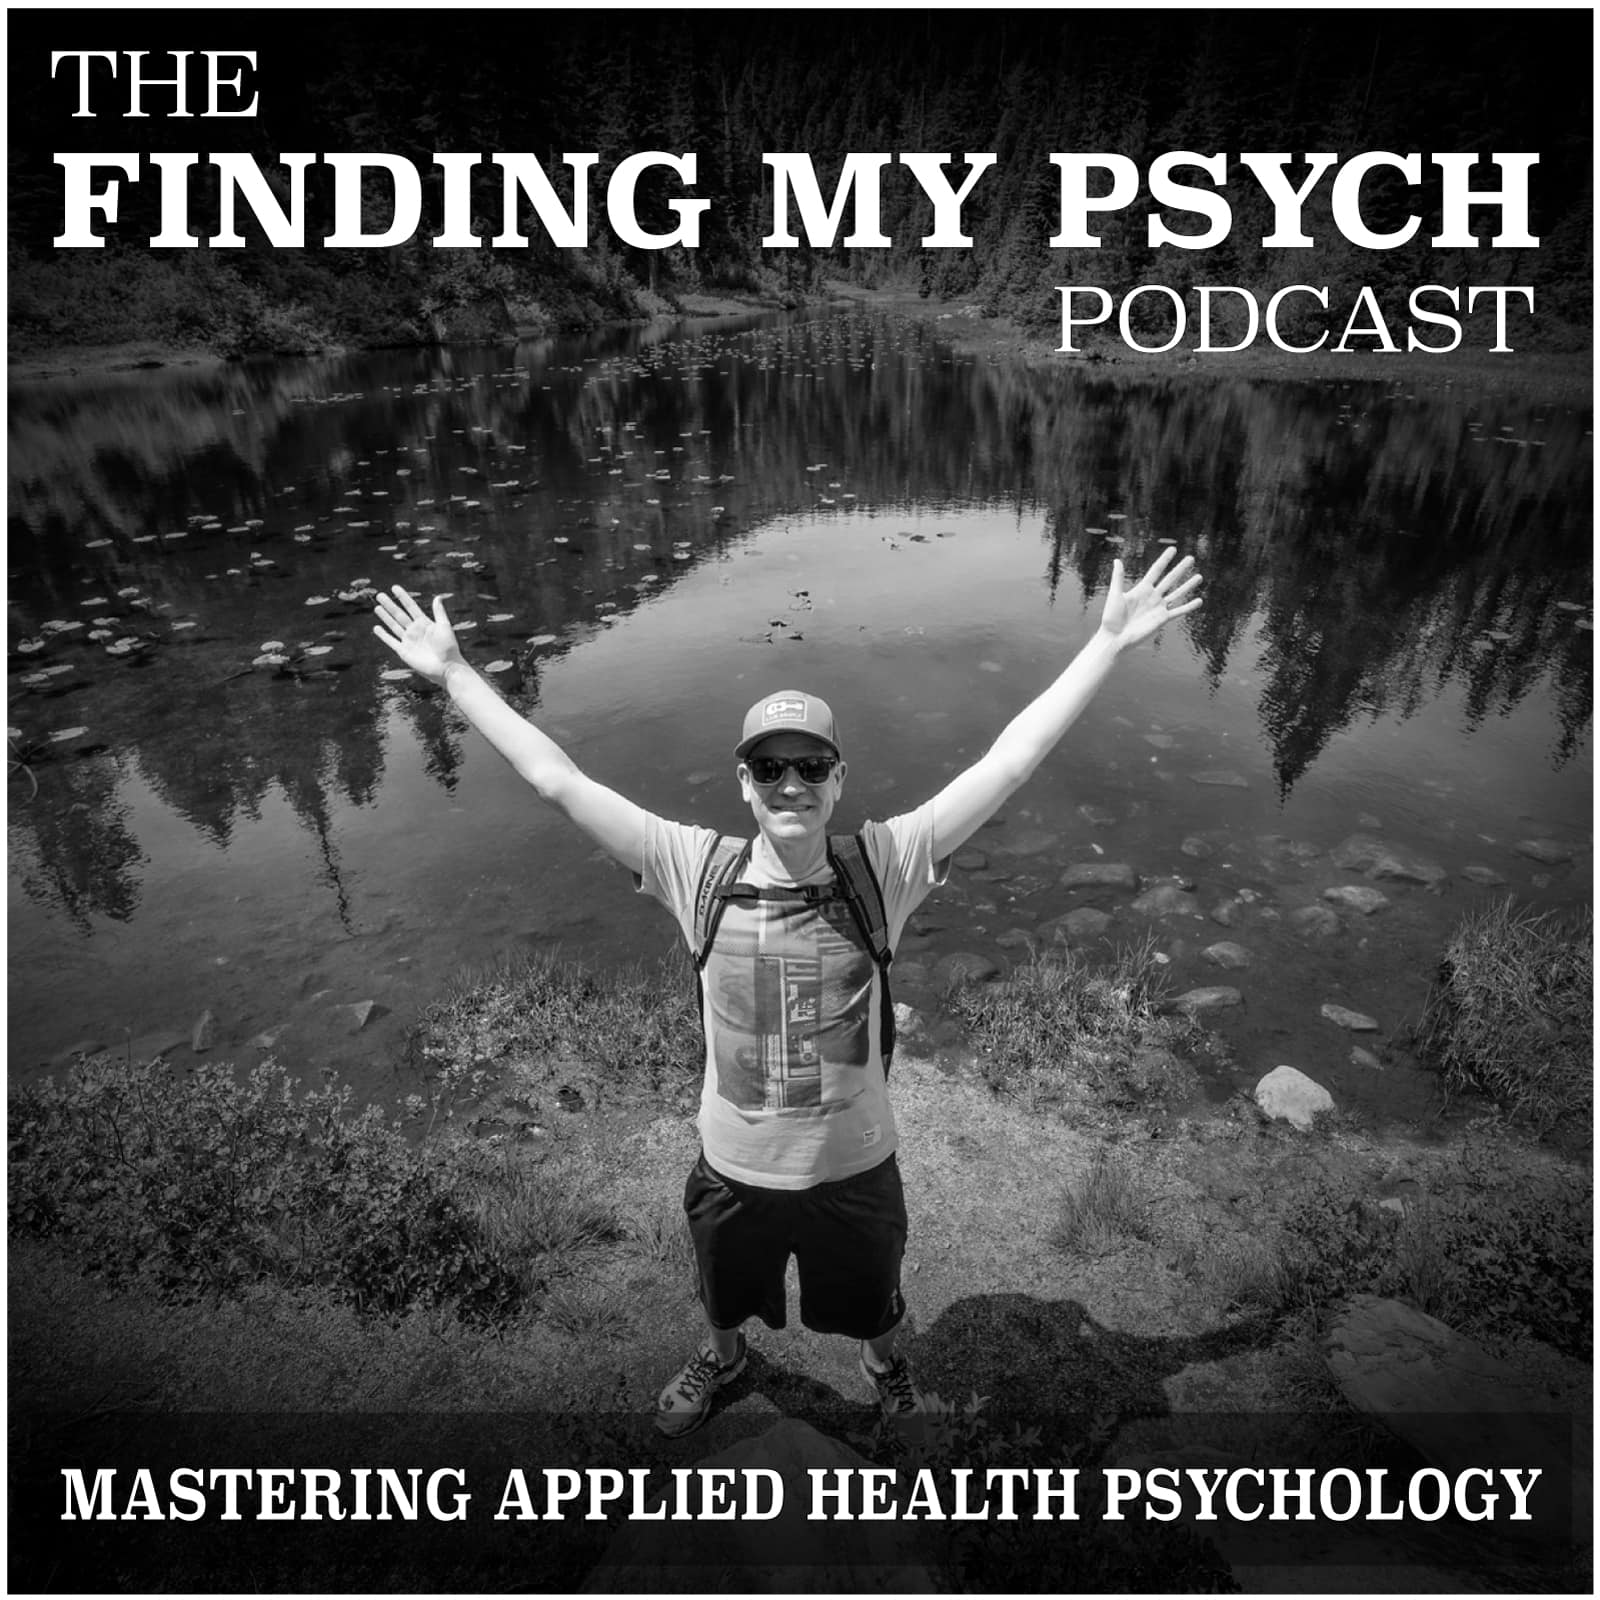 Listen to the Finding My Psych Podcast